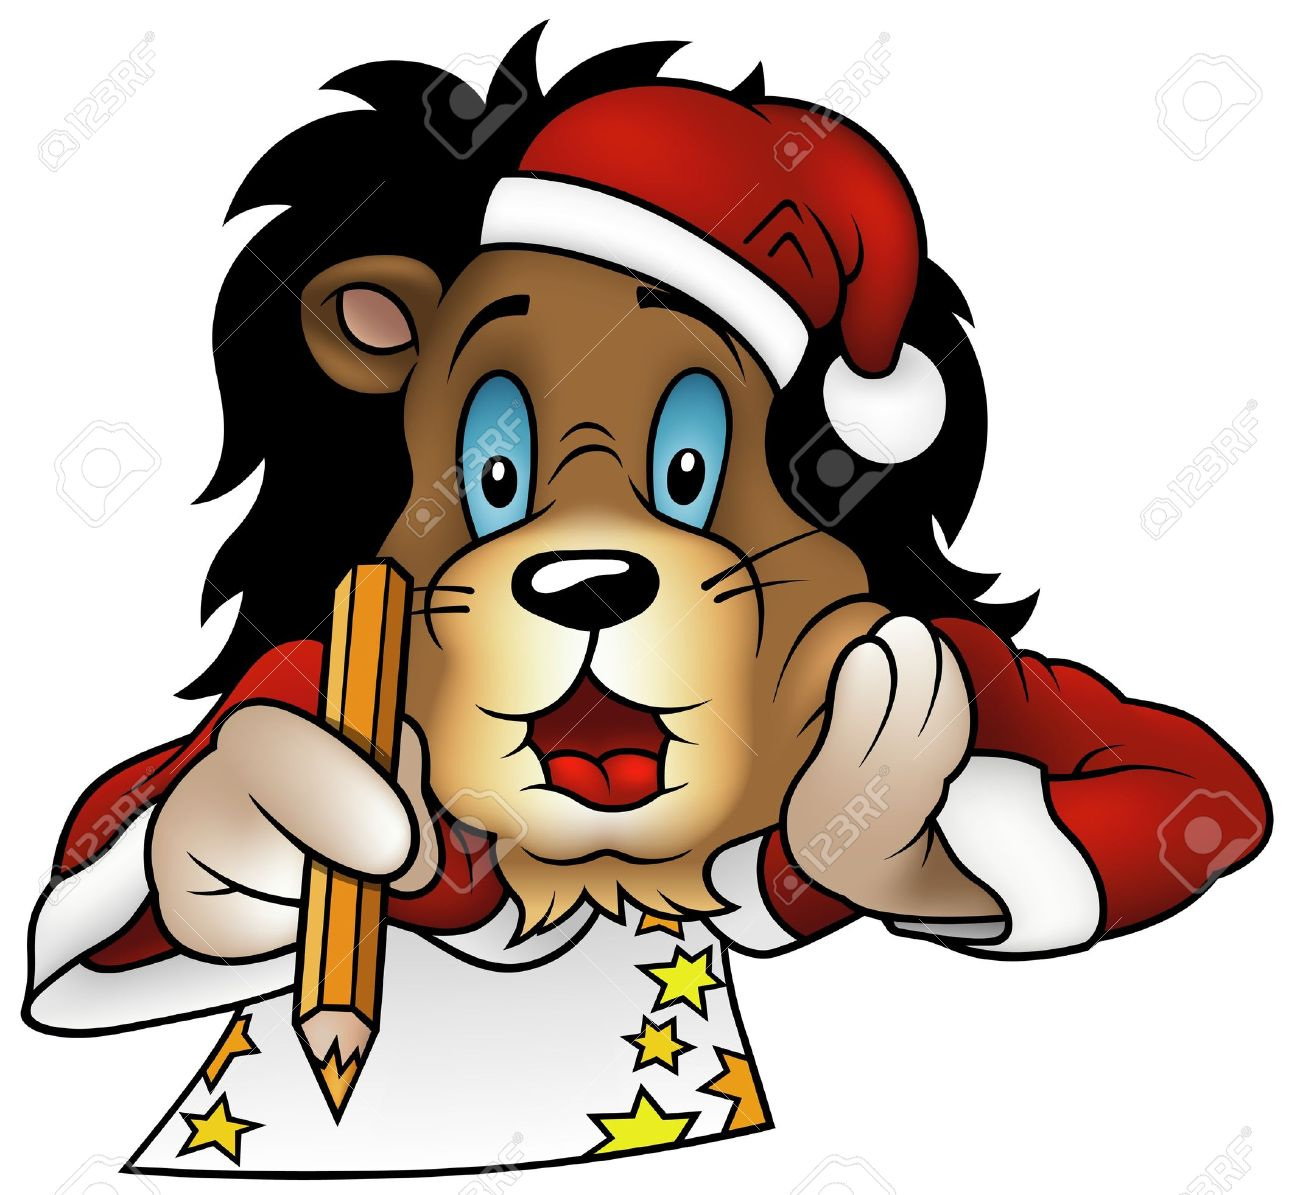 Christmas Lion 2010 - colored cartoon illustration, vector Stock Vector - 8106386